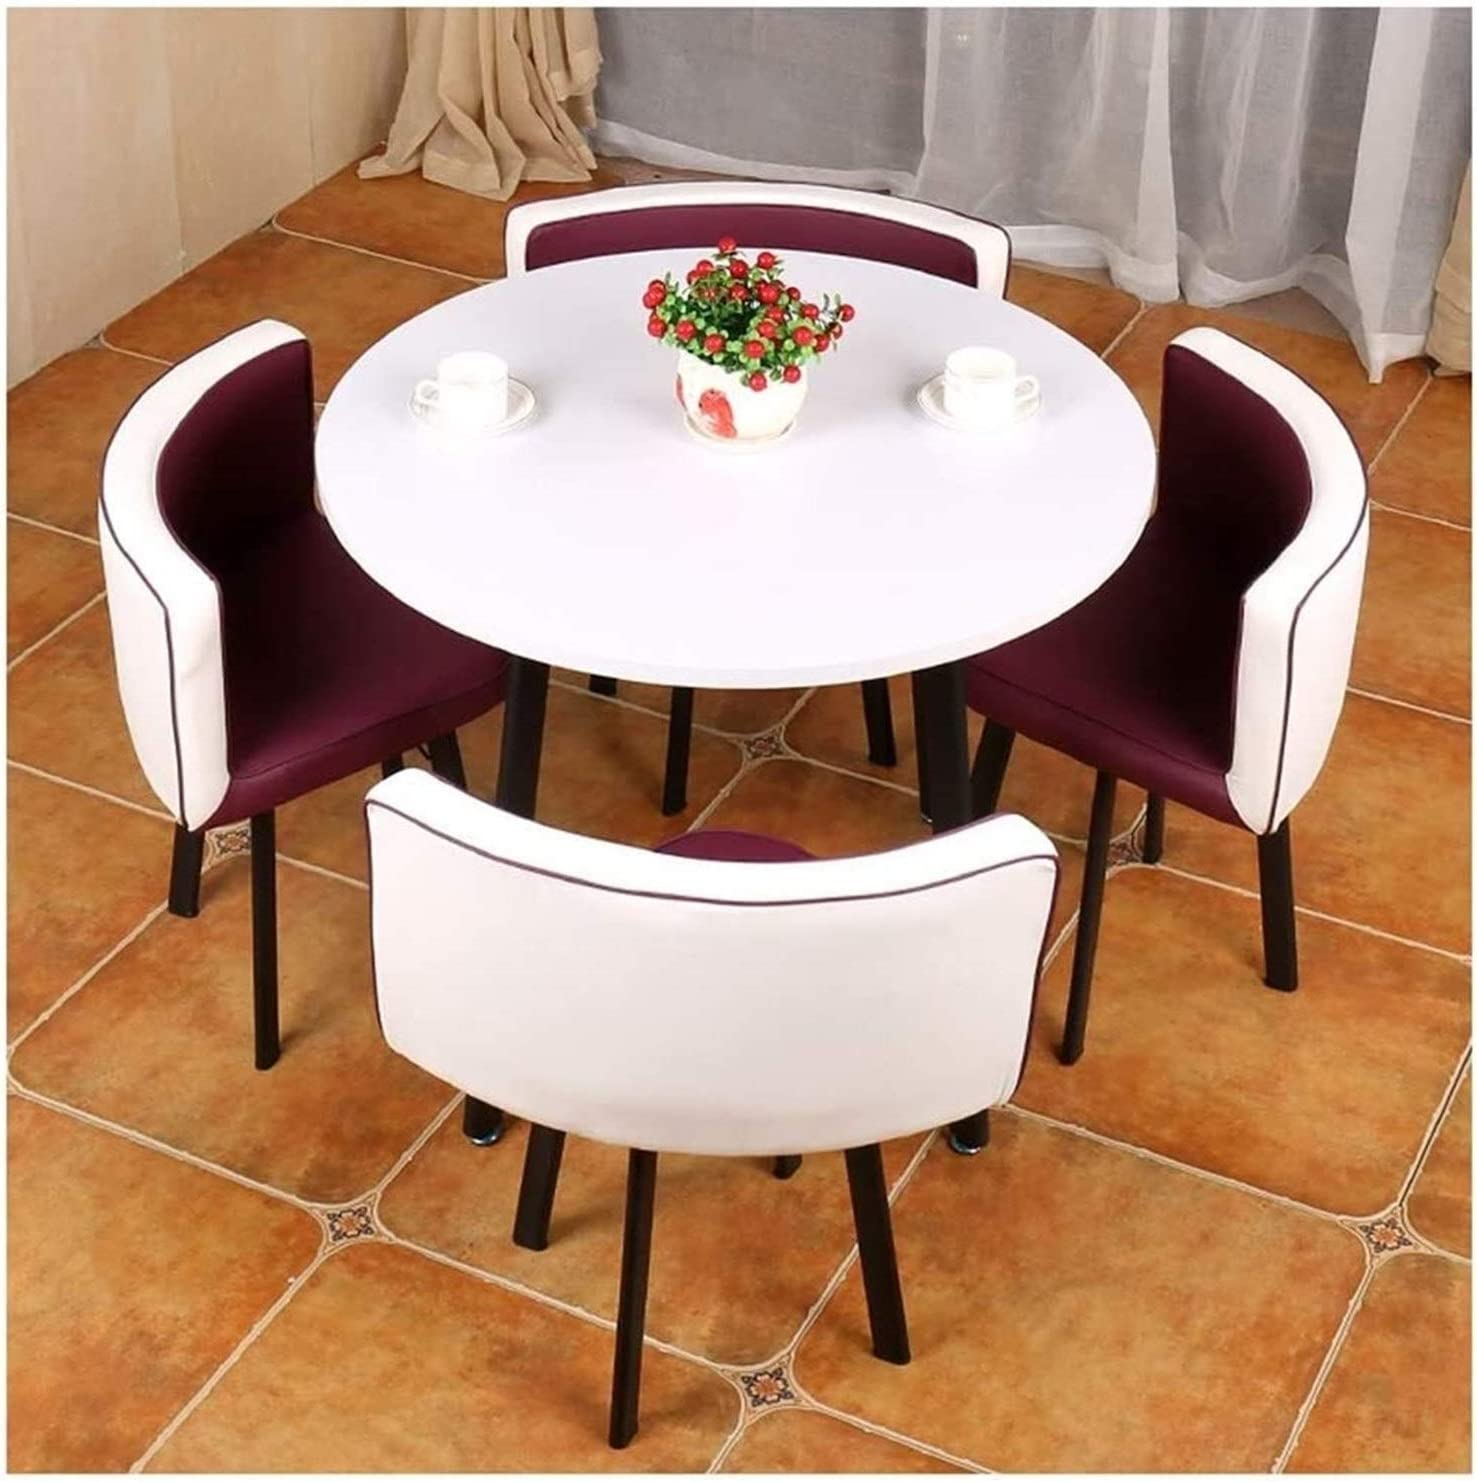 BUYT Office Reception Room Club wholesale Table Set and Chair Home Ranking TOP3 Leisure